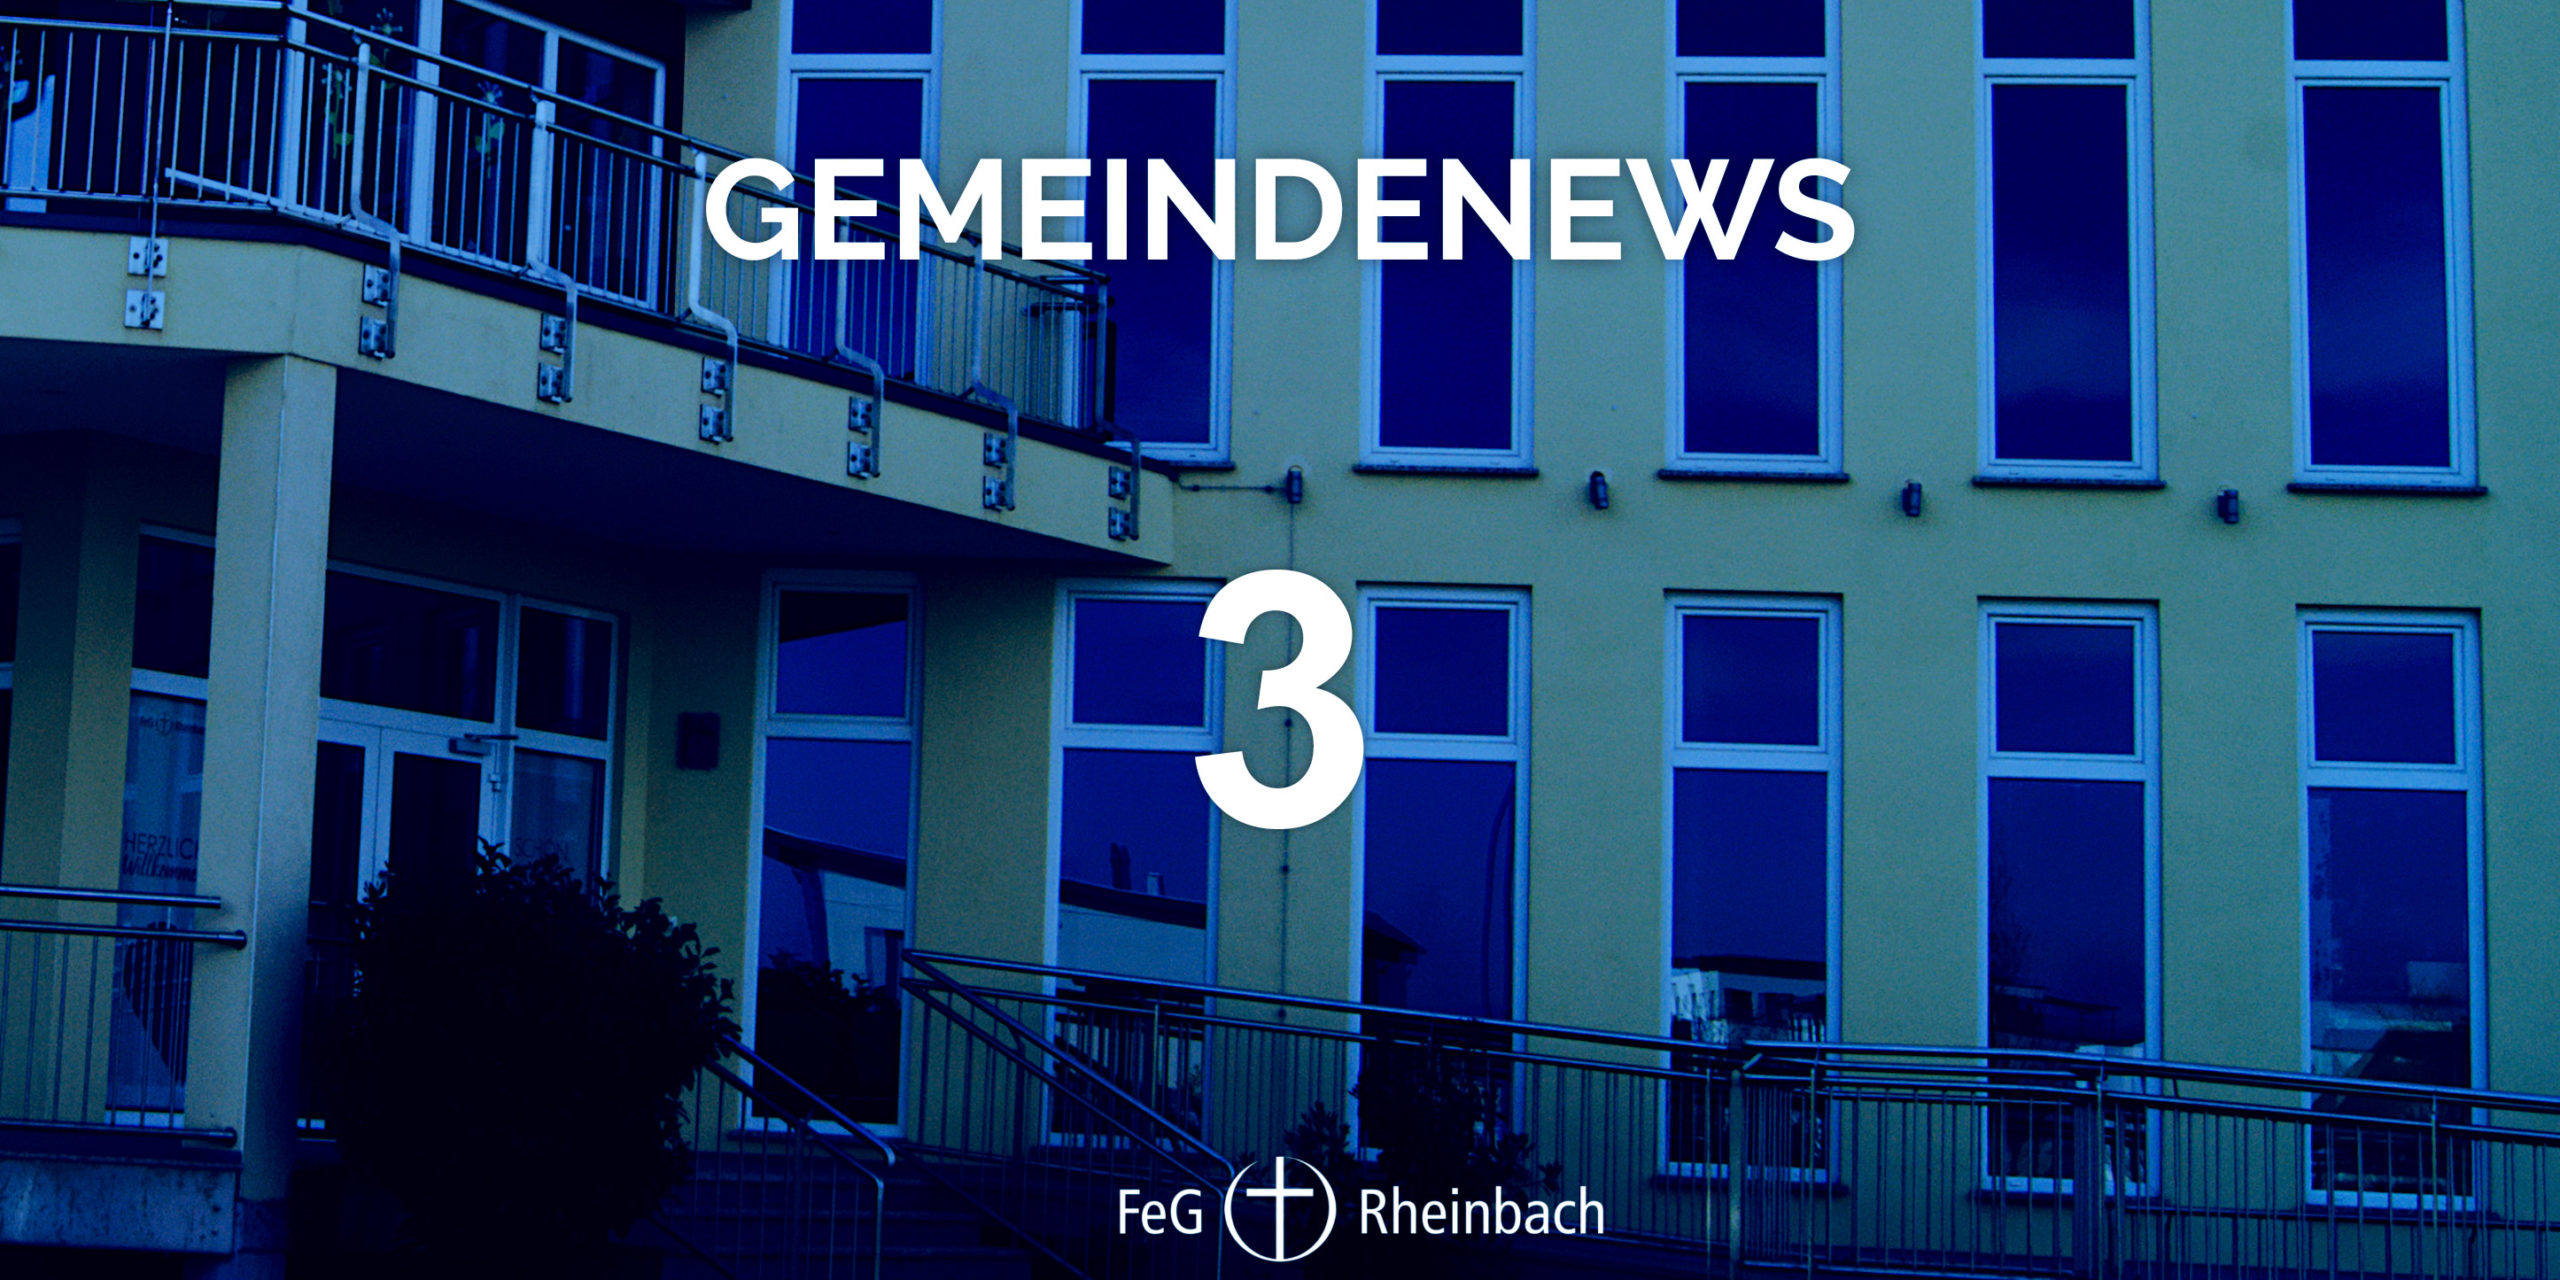 You are currently viewing Gemeindenews 3